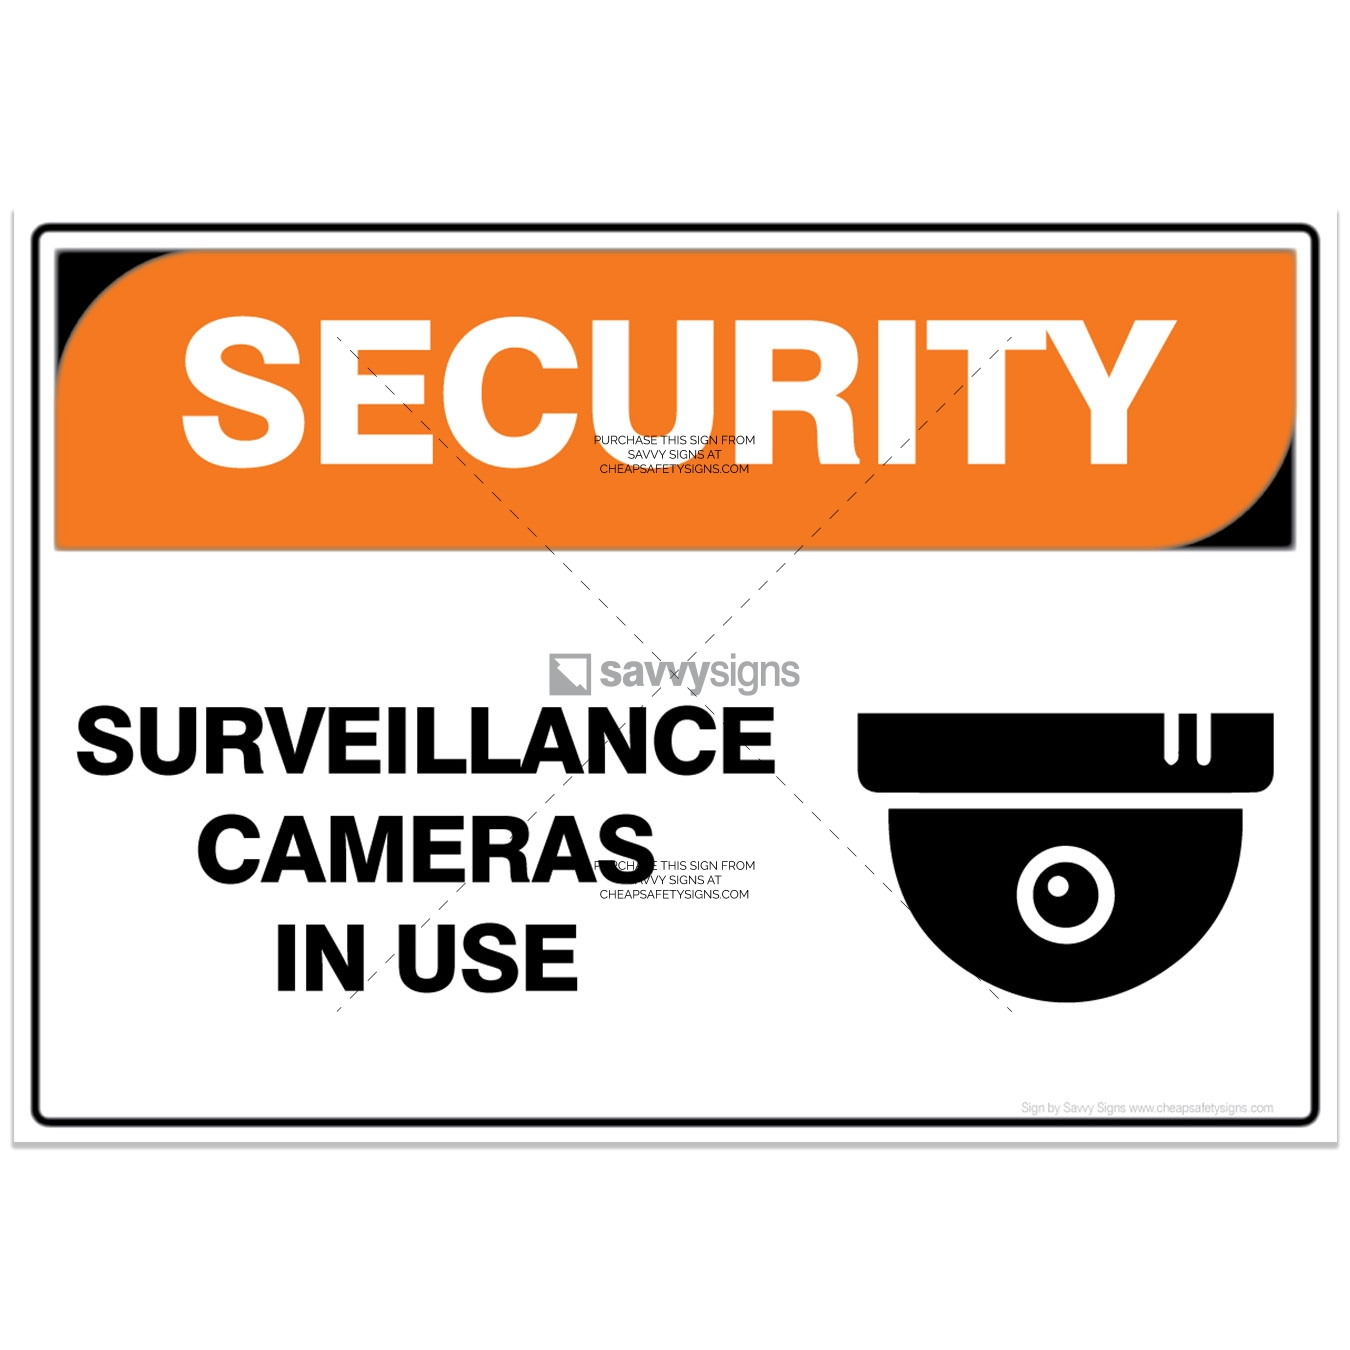 SSSEC3018-SECURITY-Workplace-Safety-Signs_Savvy-Signs_v3